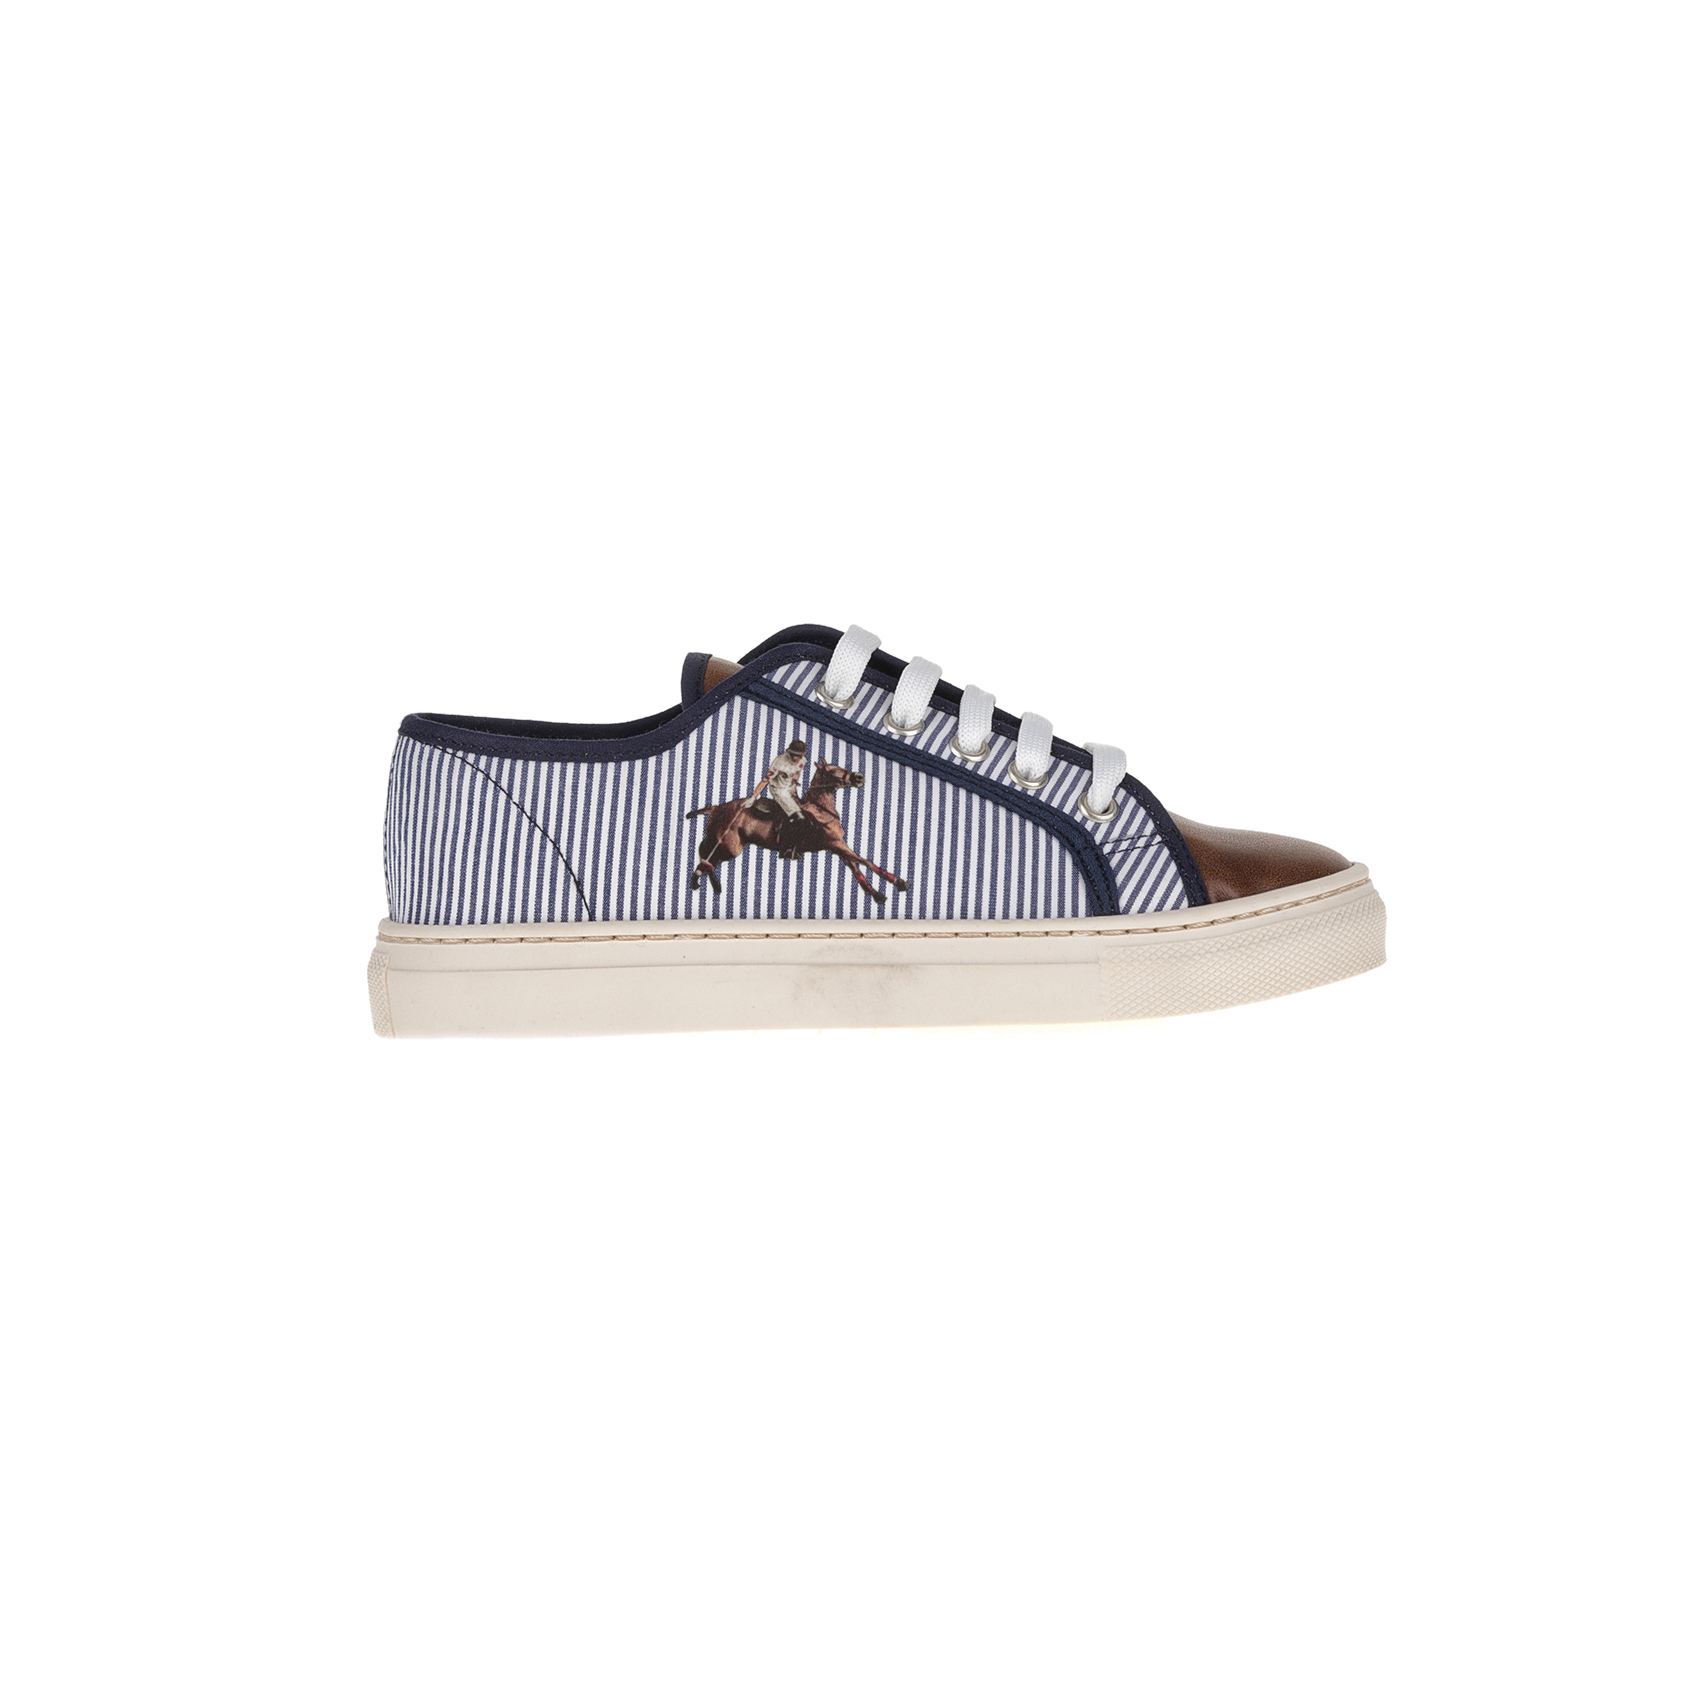 MONNALISA SHOES - Sneakers MONNALISA SHOES POLO H+3 παιδικά boys παπούτσια sneakers